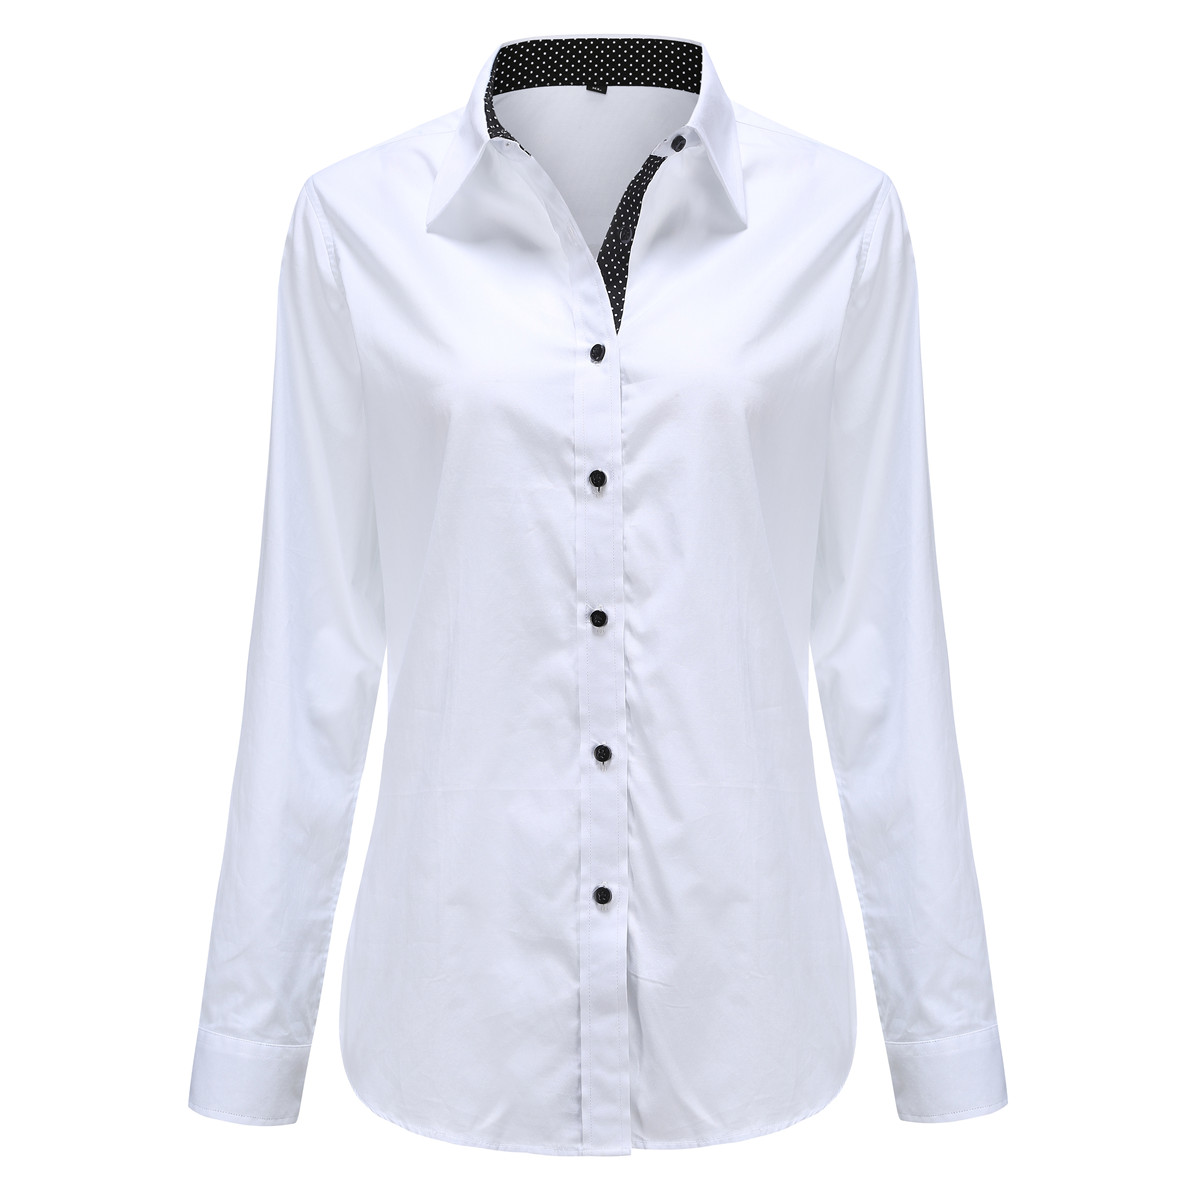 Dioufond White Office Ladies Blouse Shirt Patchwork Polka Dot Women Tops Autunm Winter Casual Turn Down Collar Shirts Plus Size